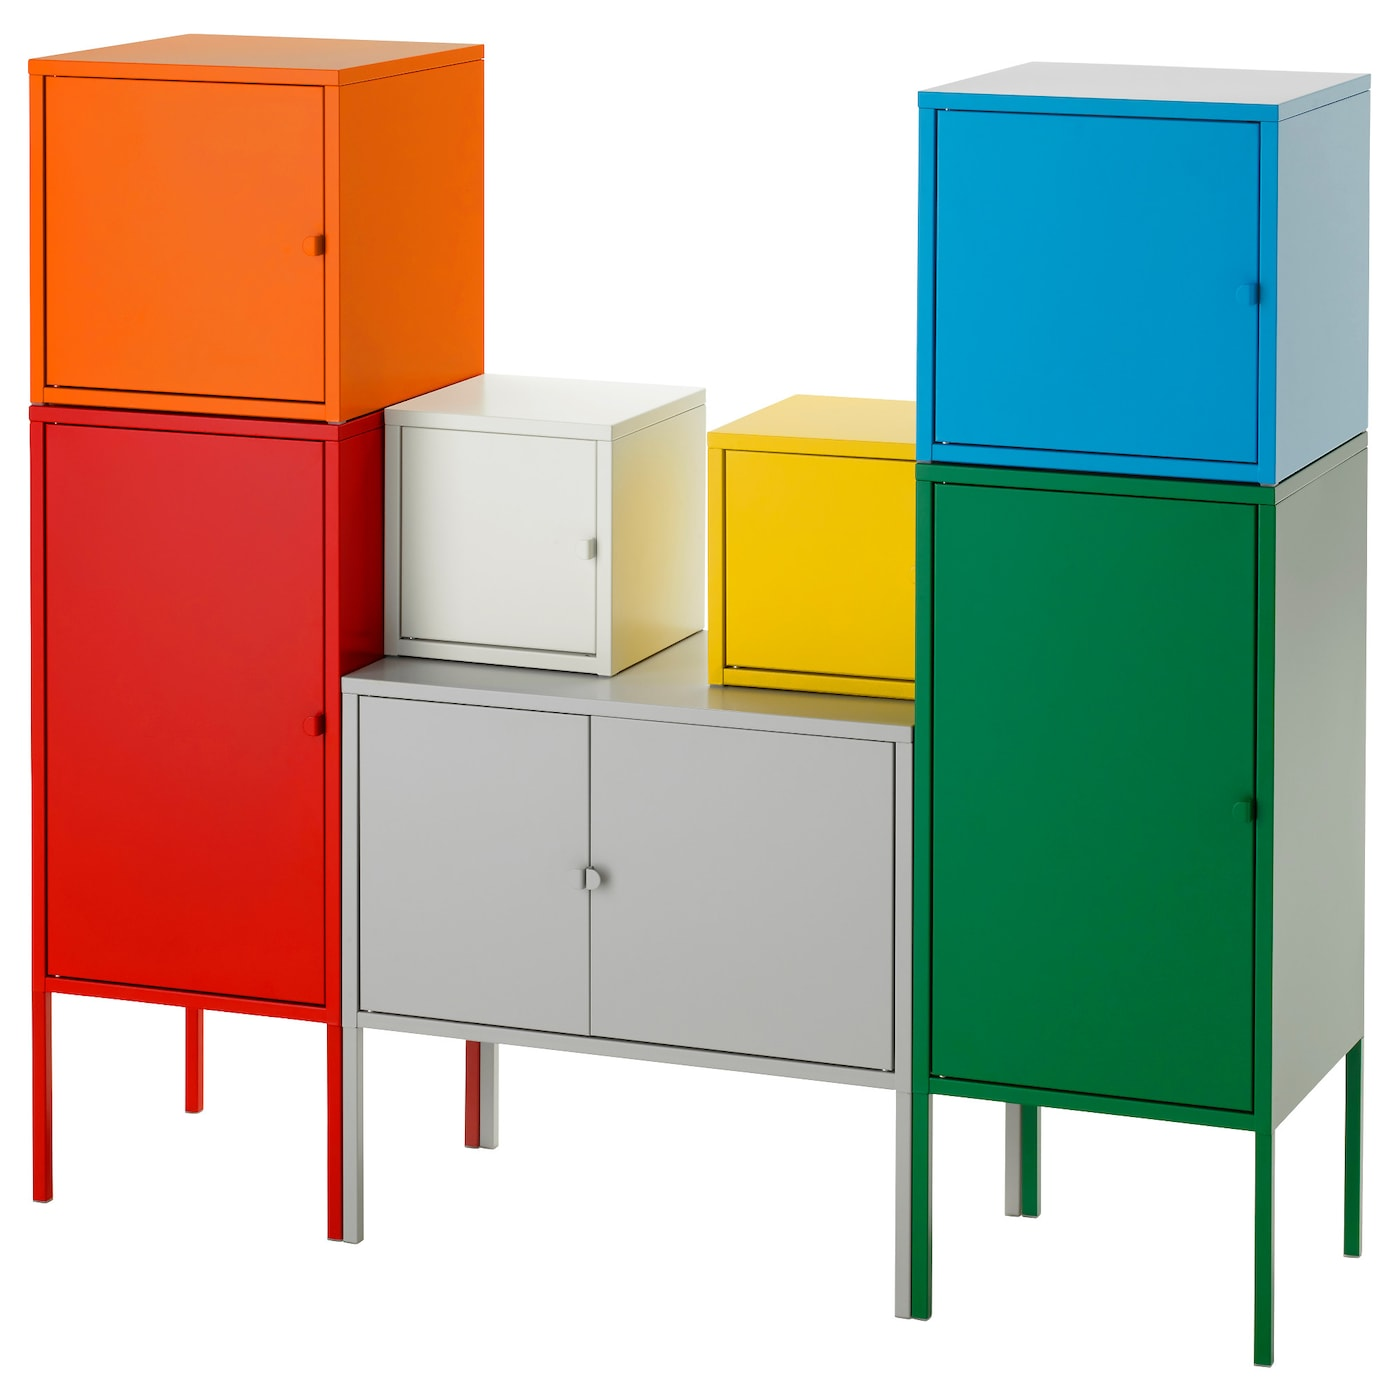 Lixhult storage combination white green blue yellow red - Ikea prodotti per ufficio ...